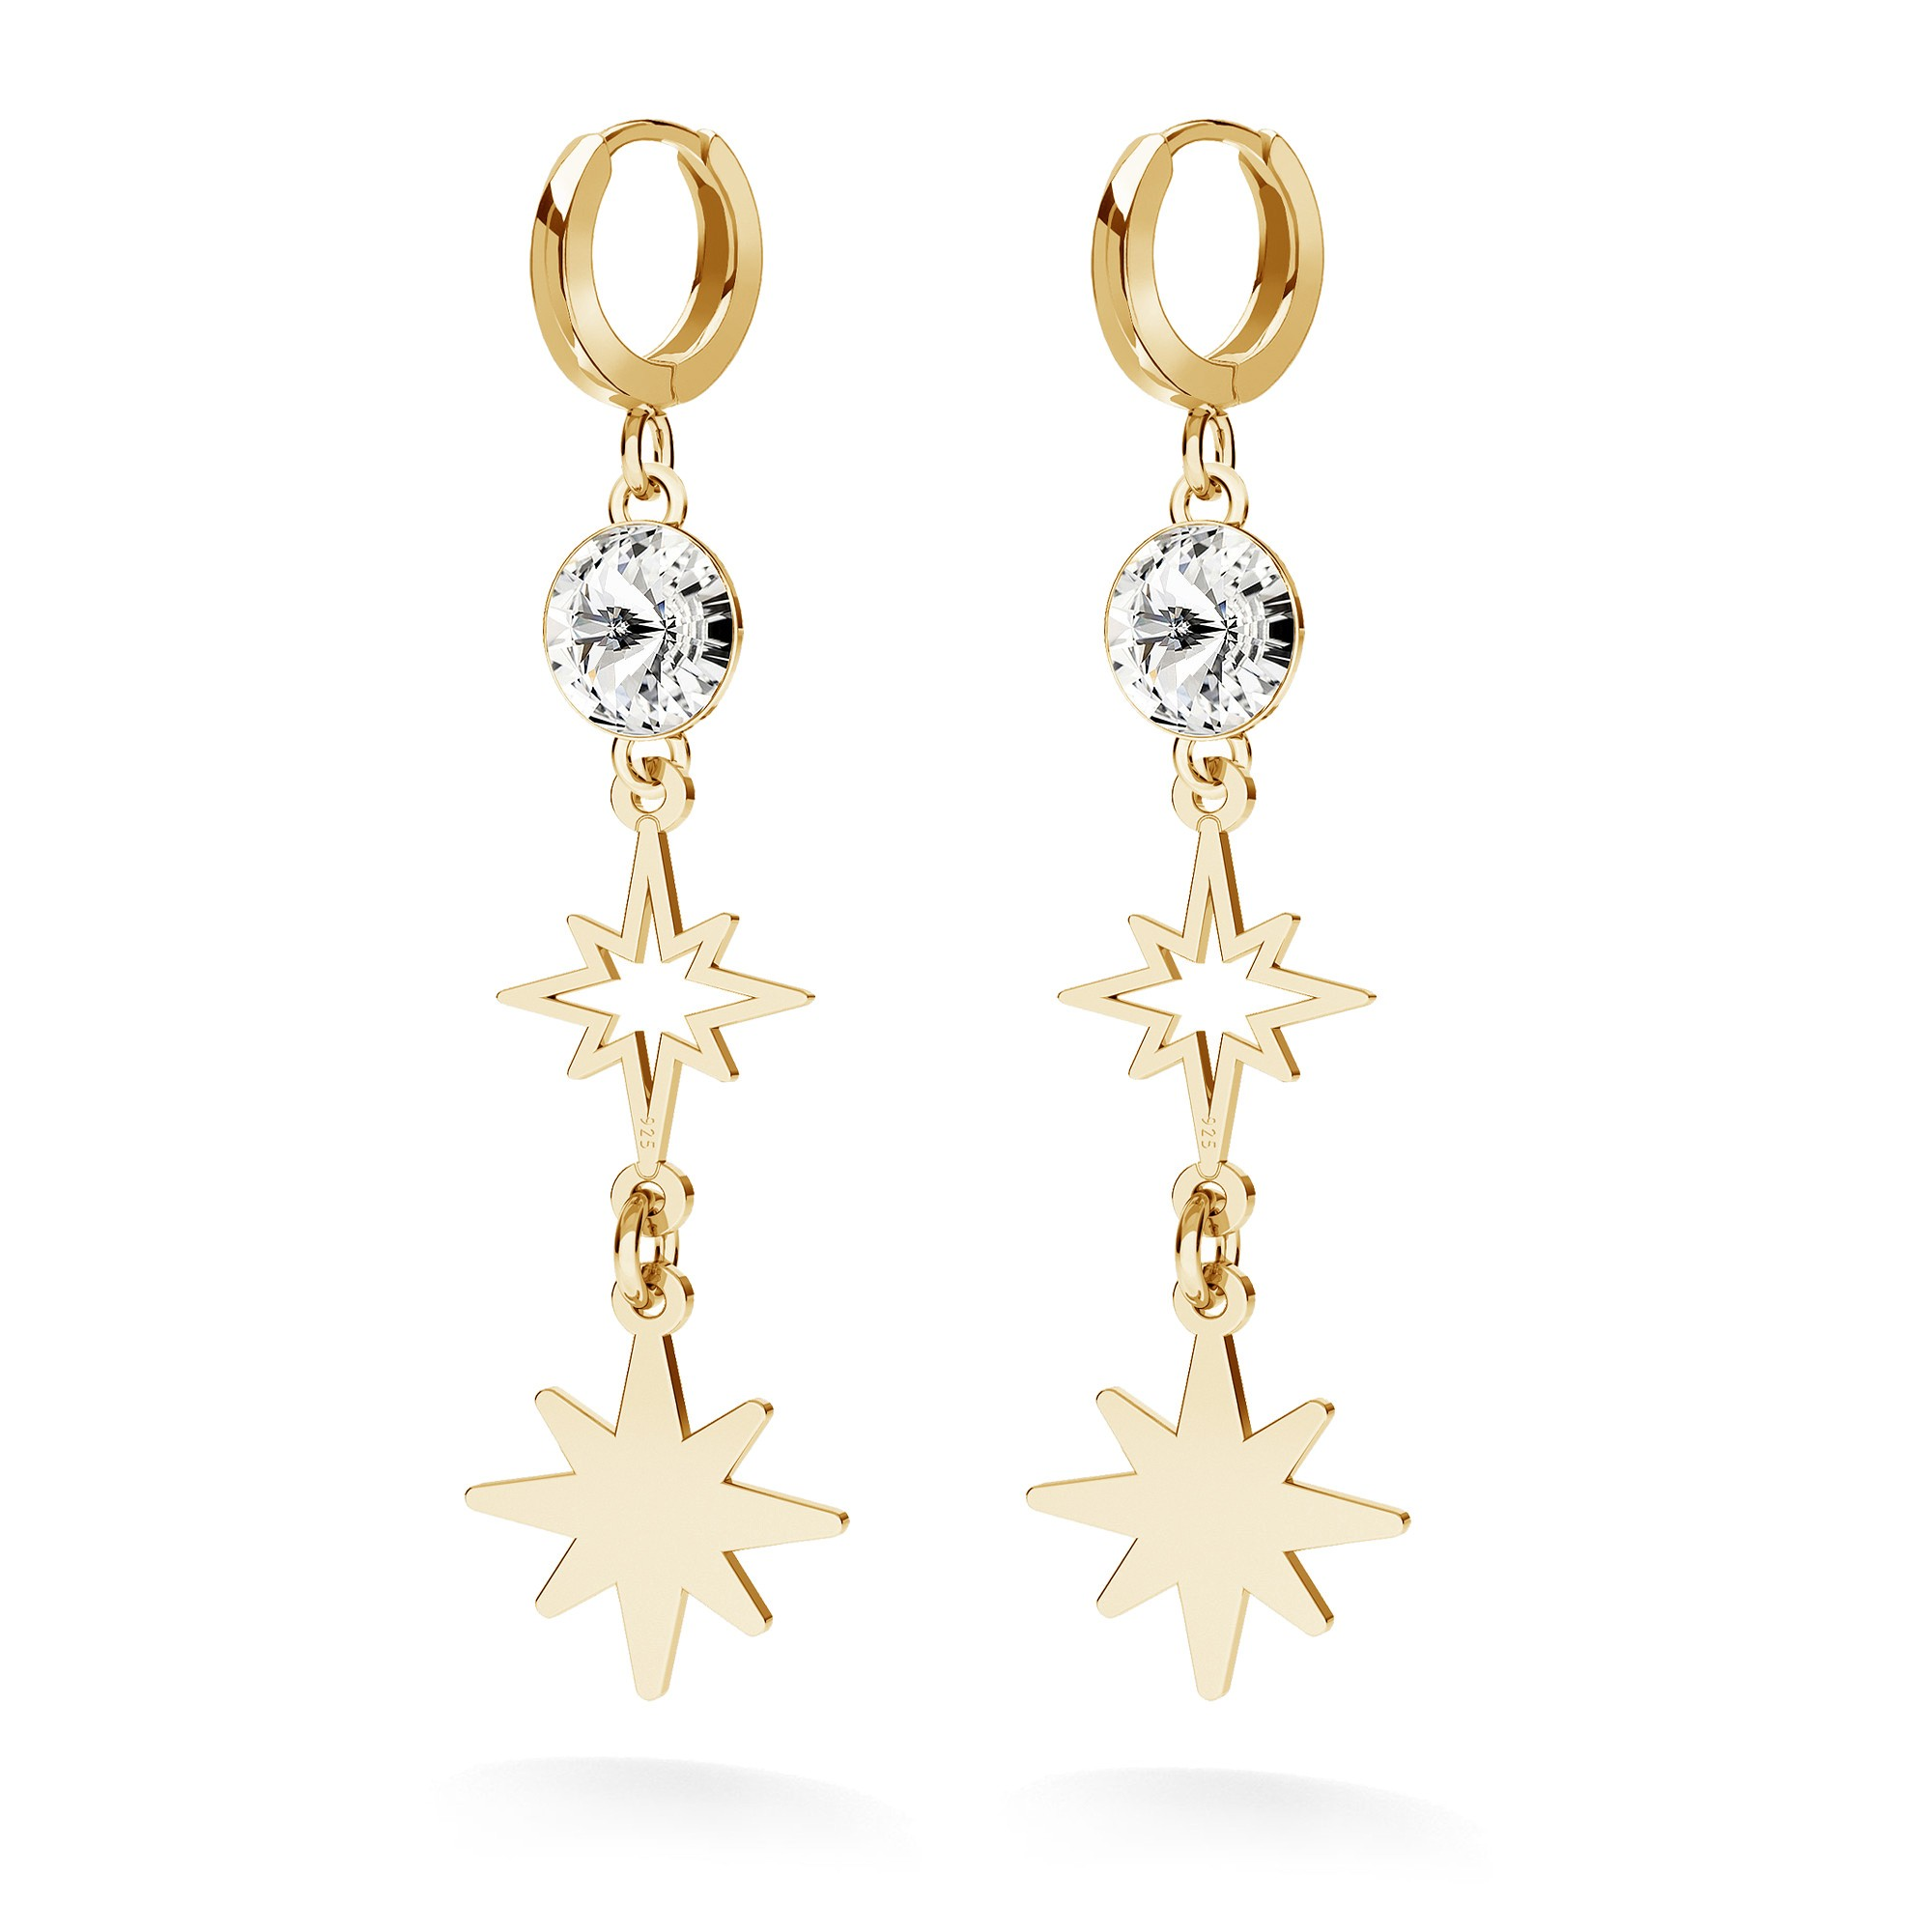 STAR earrings sterling silver 925